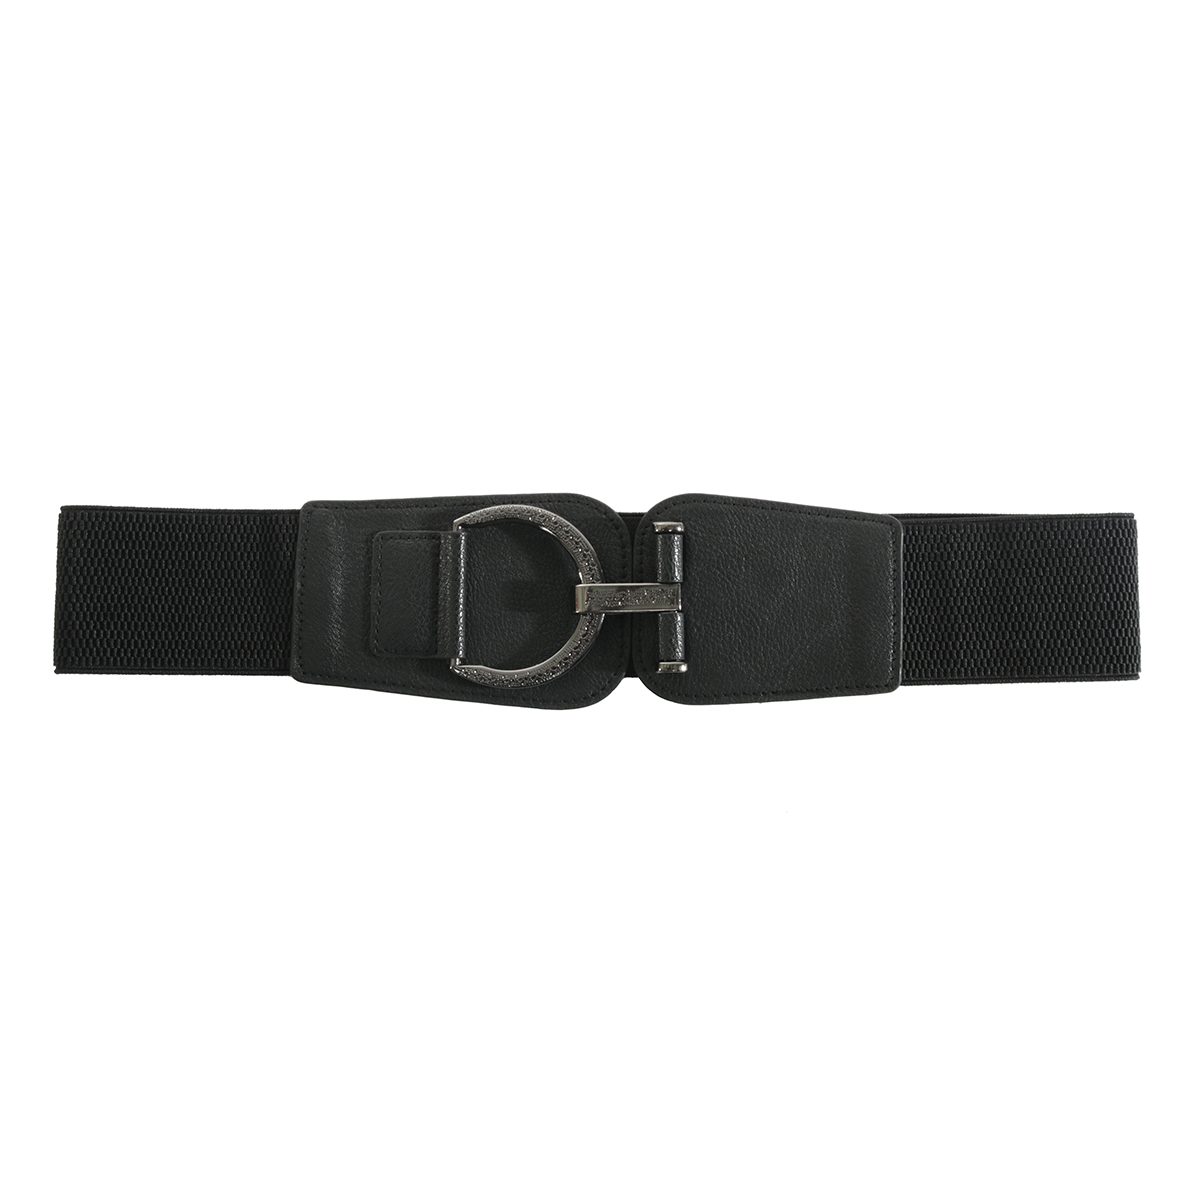 "BLK 35"" FANCY BUCKLE BELT"